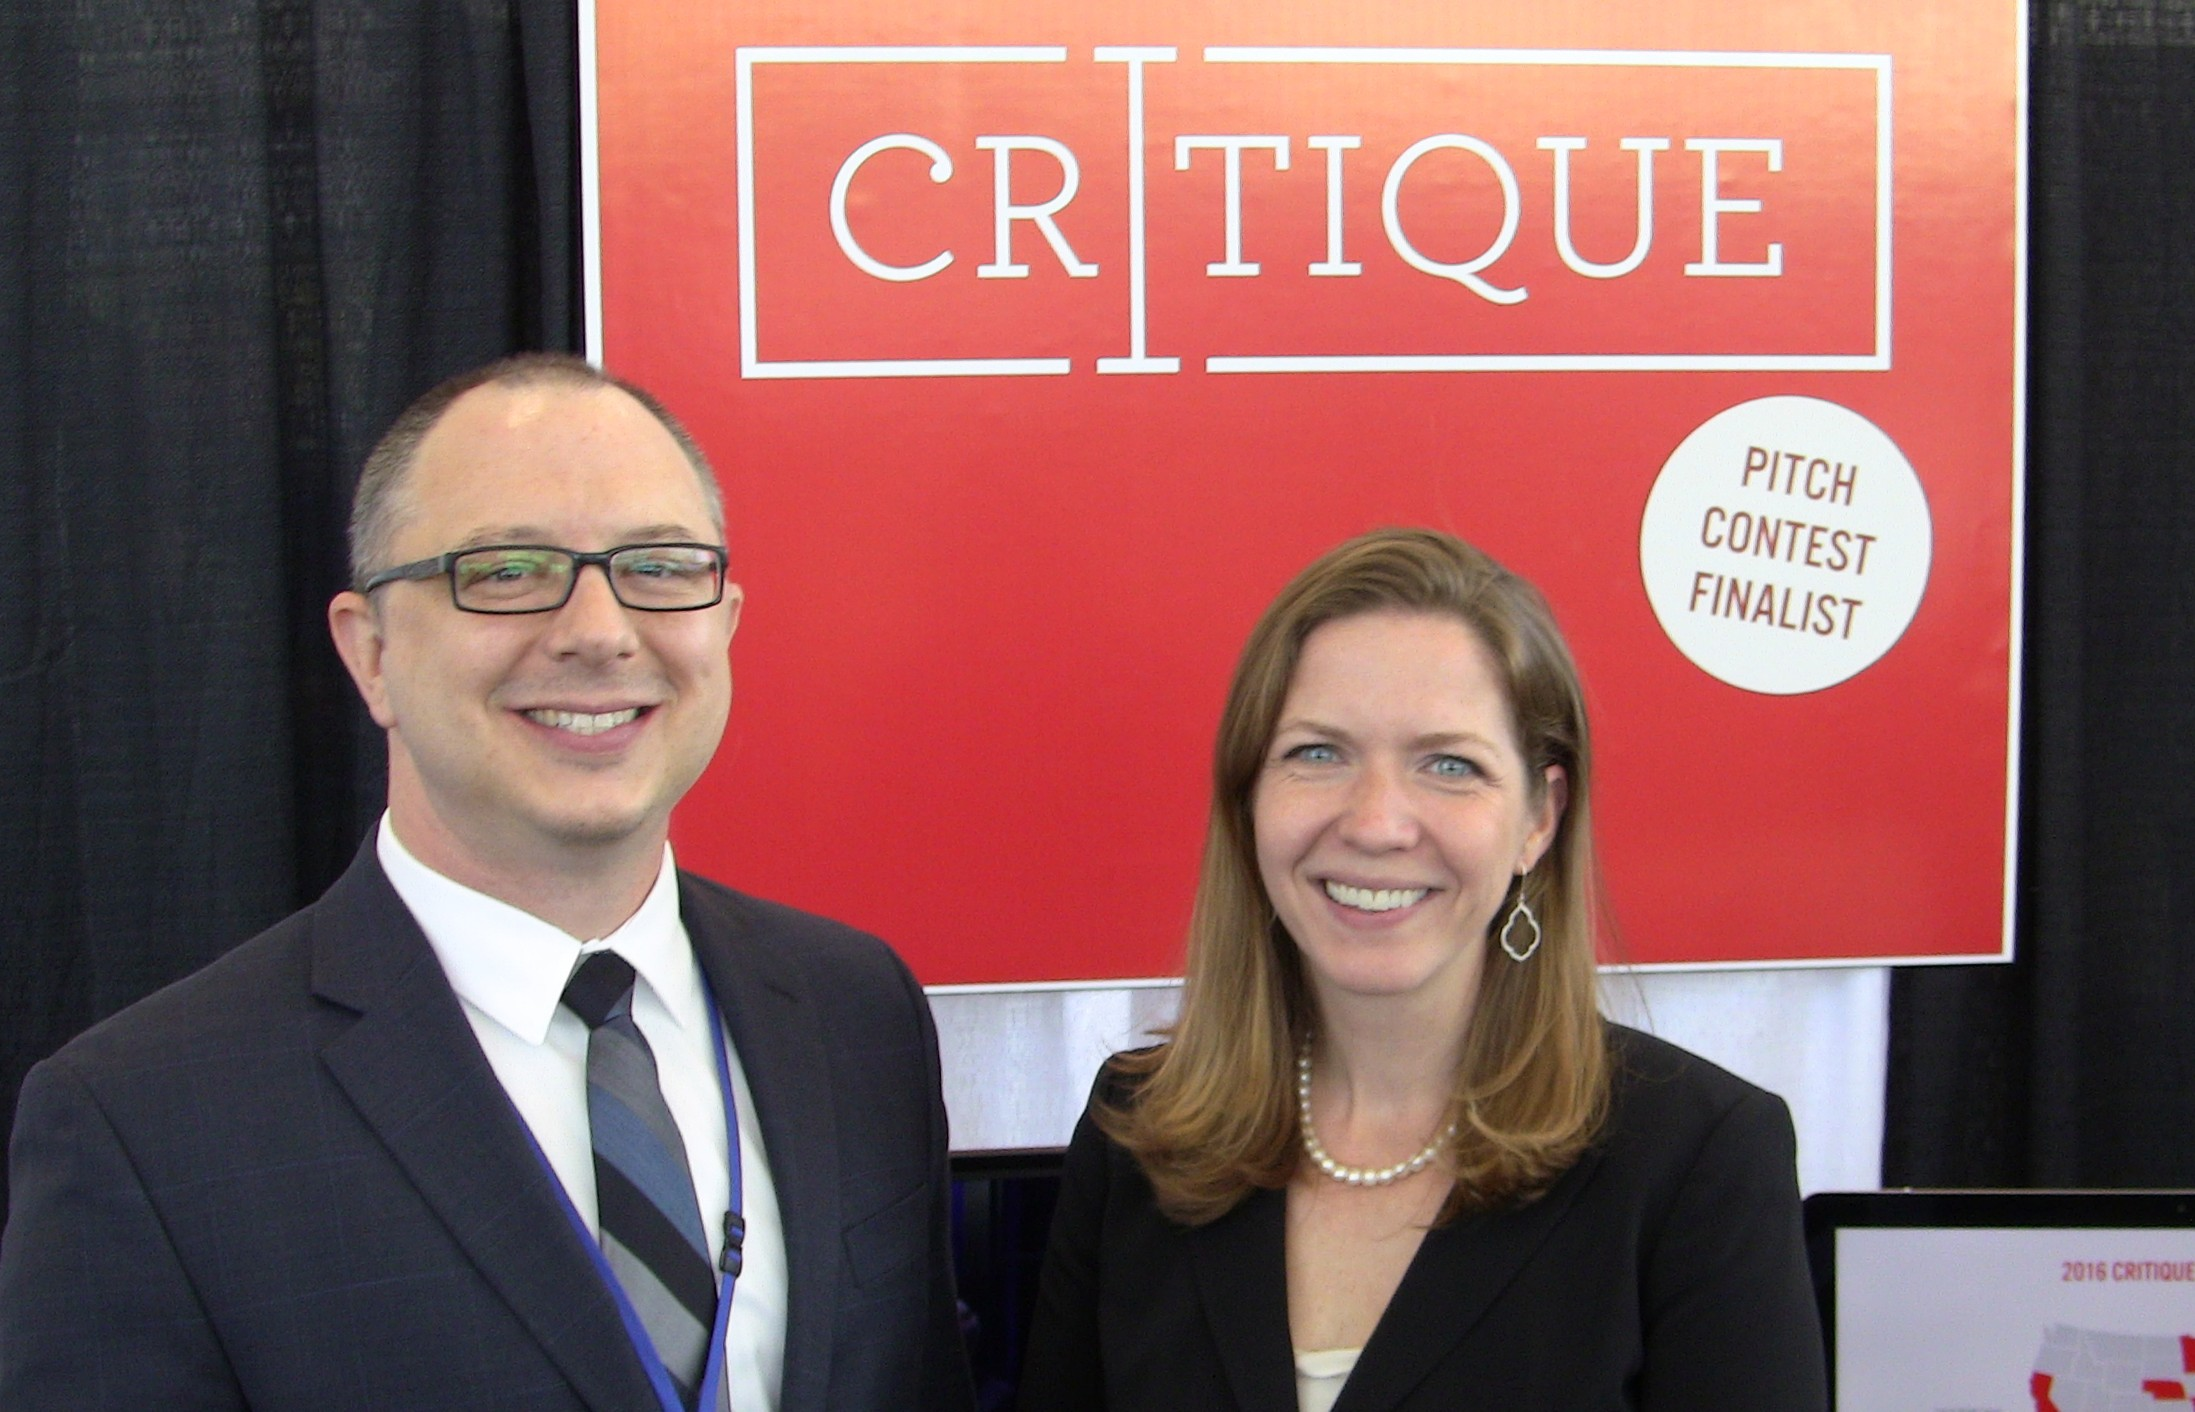 Co-founders Matthew Callison and Tiffany Roman of Critique.